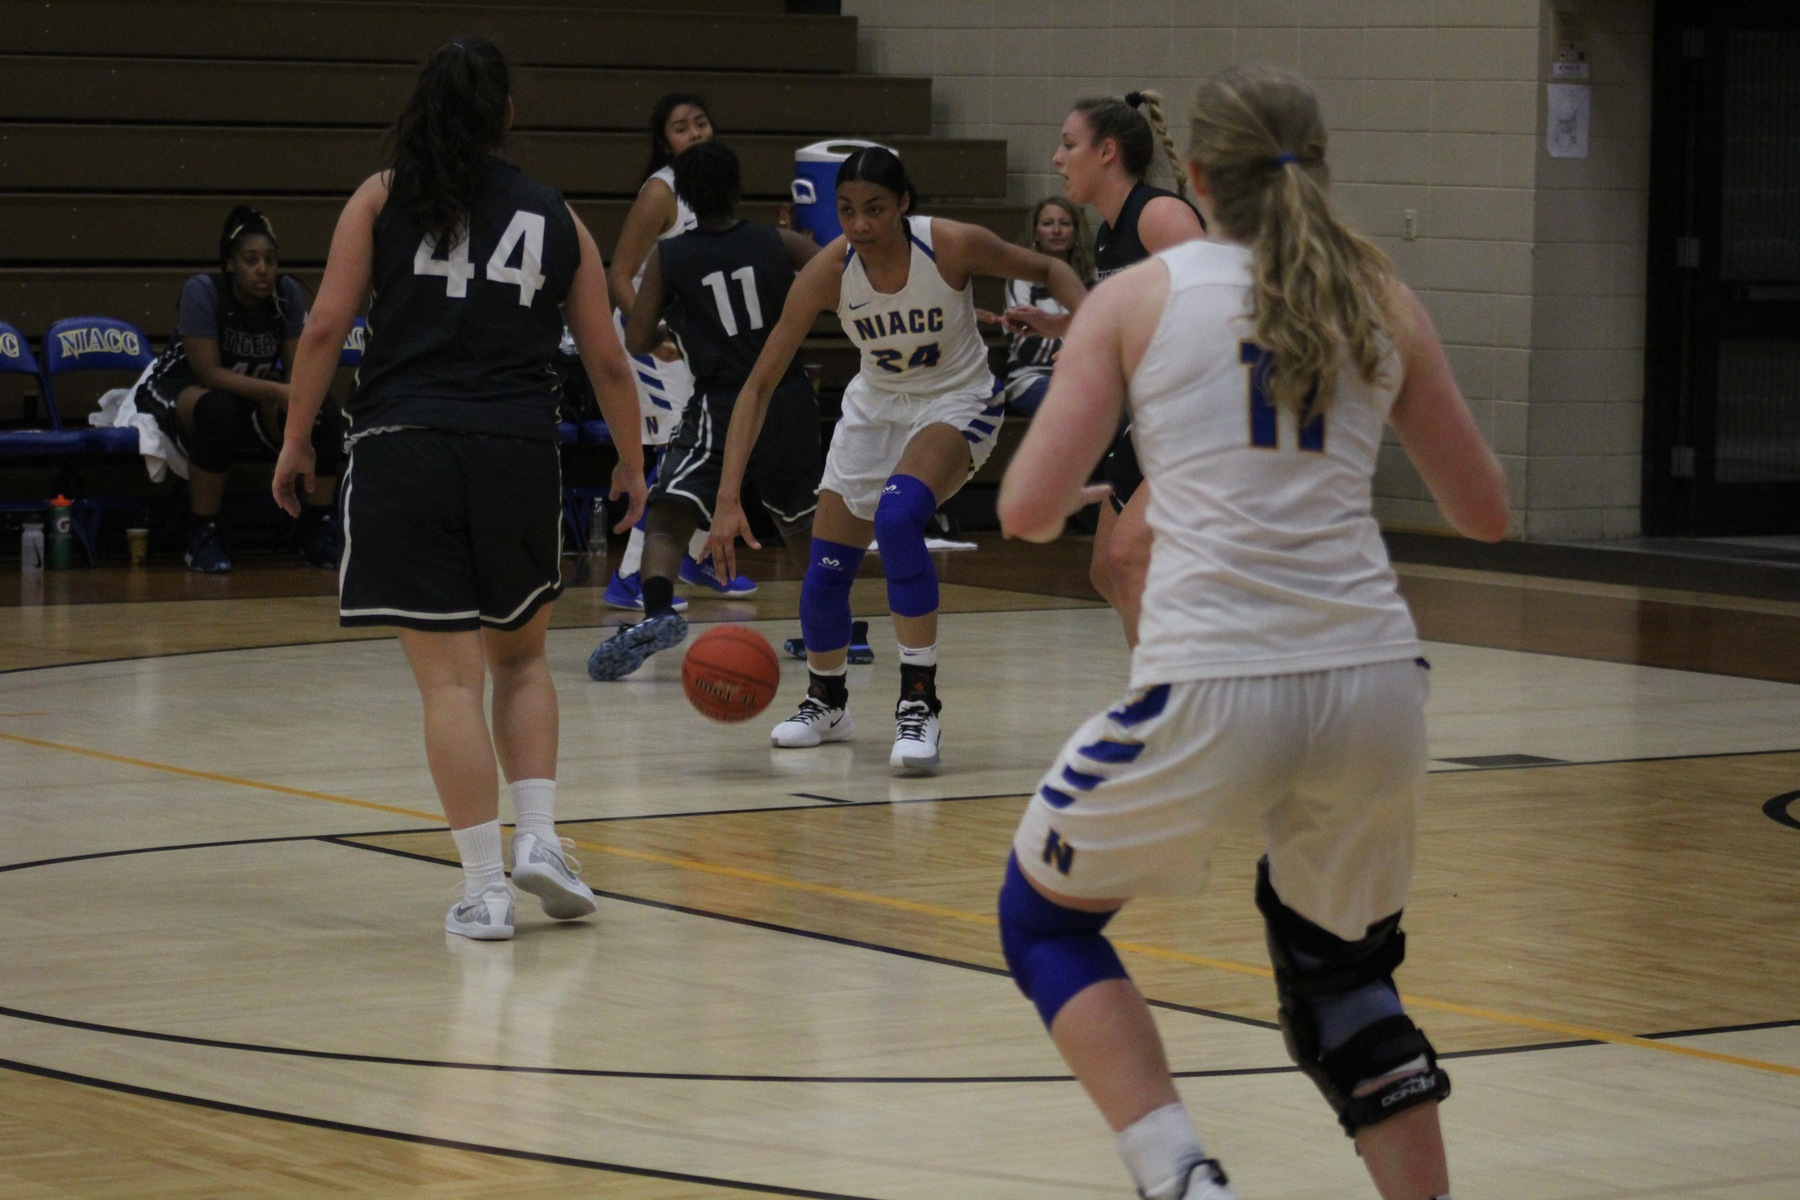 Sierra Morrow drives to the basket in Saturday's game against Marshalltown CC at the Konigsmark Klassic.